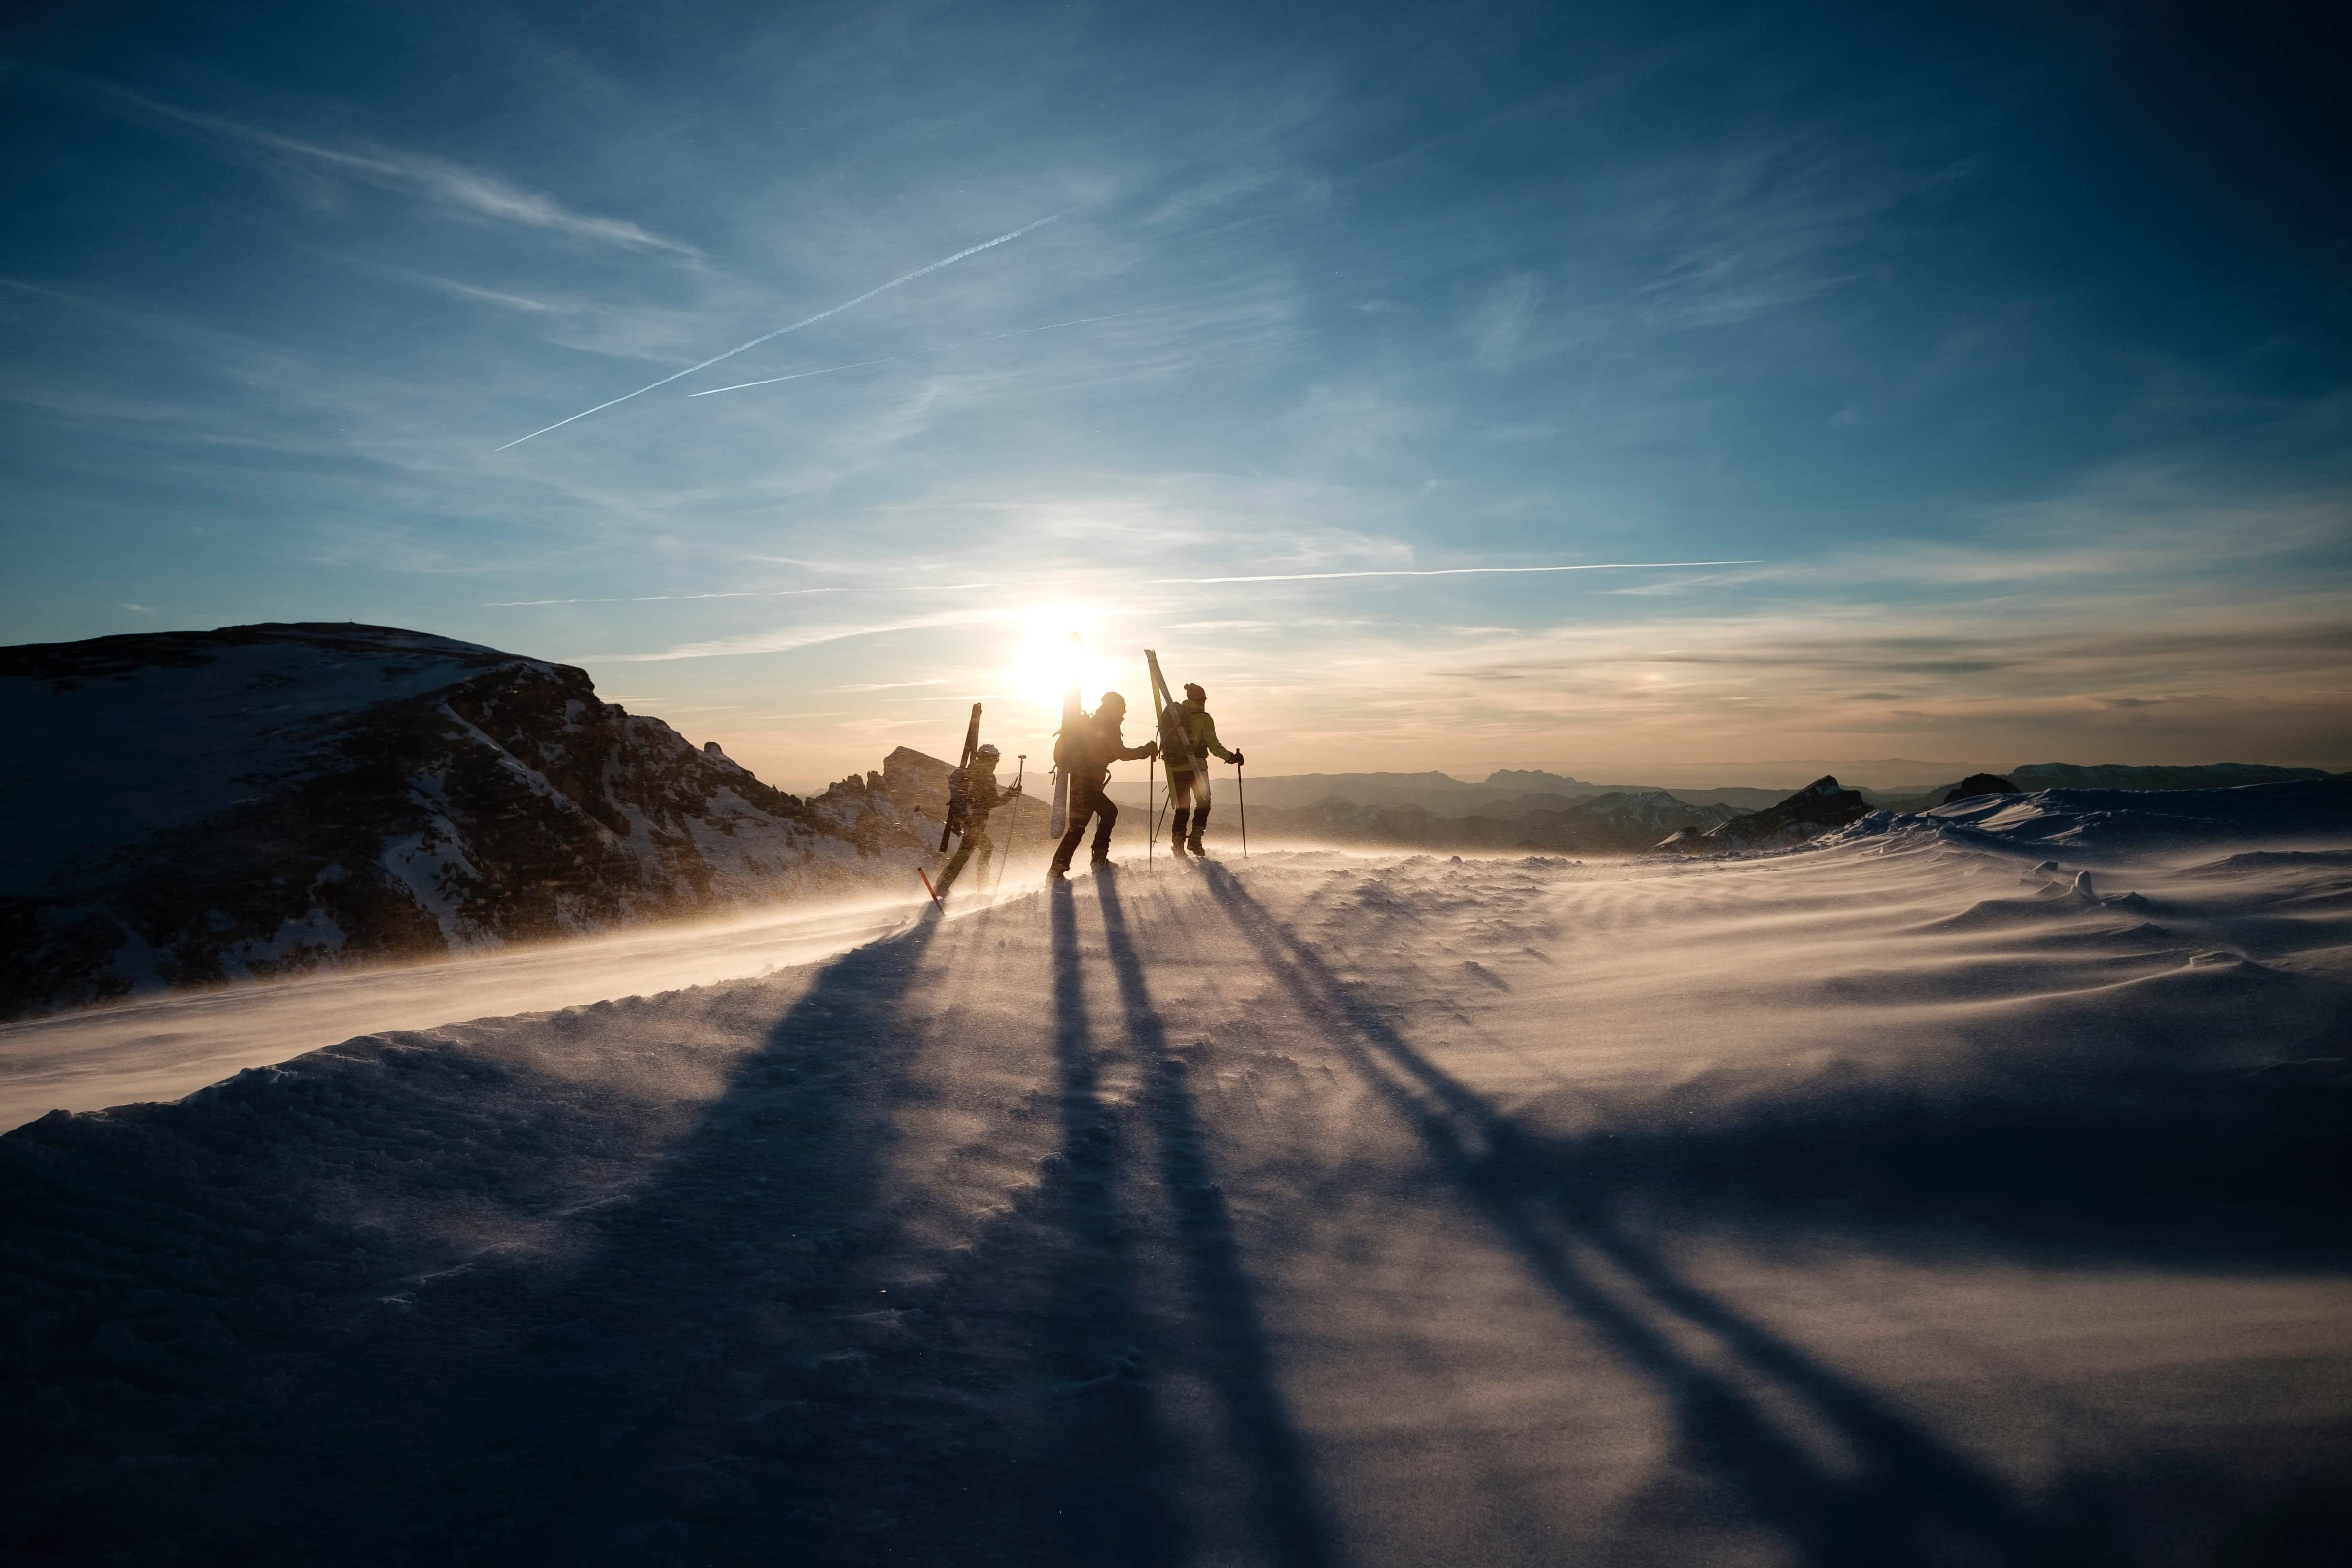 Three skiers walking as the sun starts to set